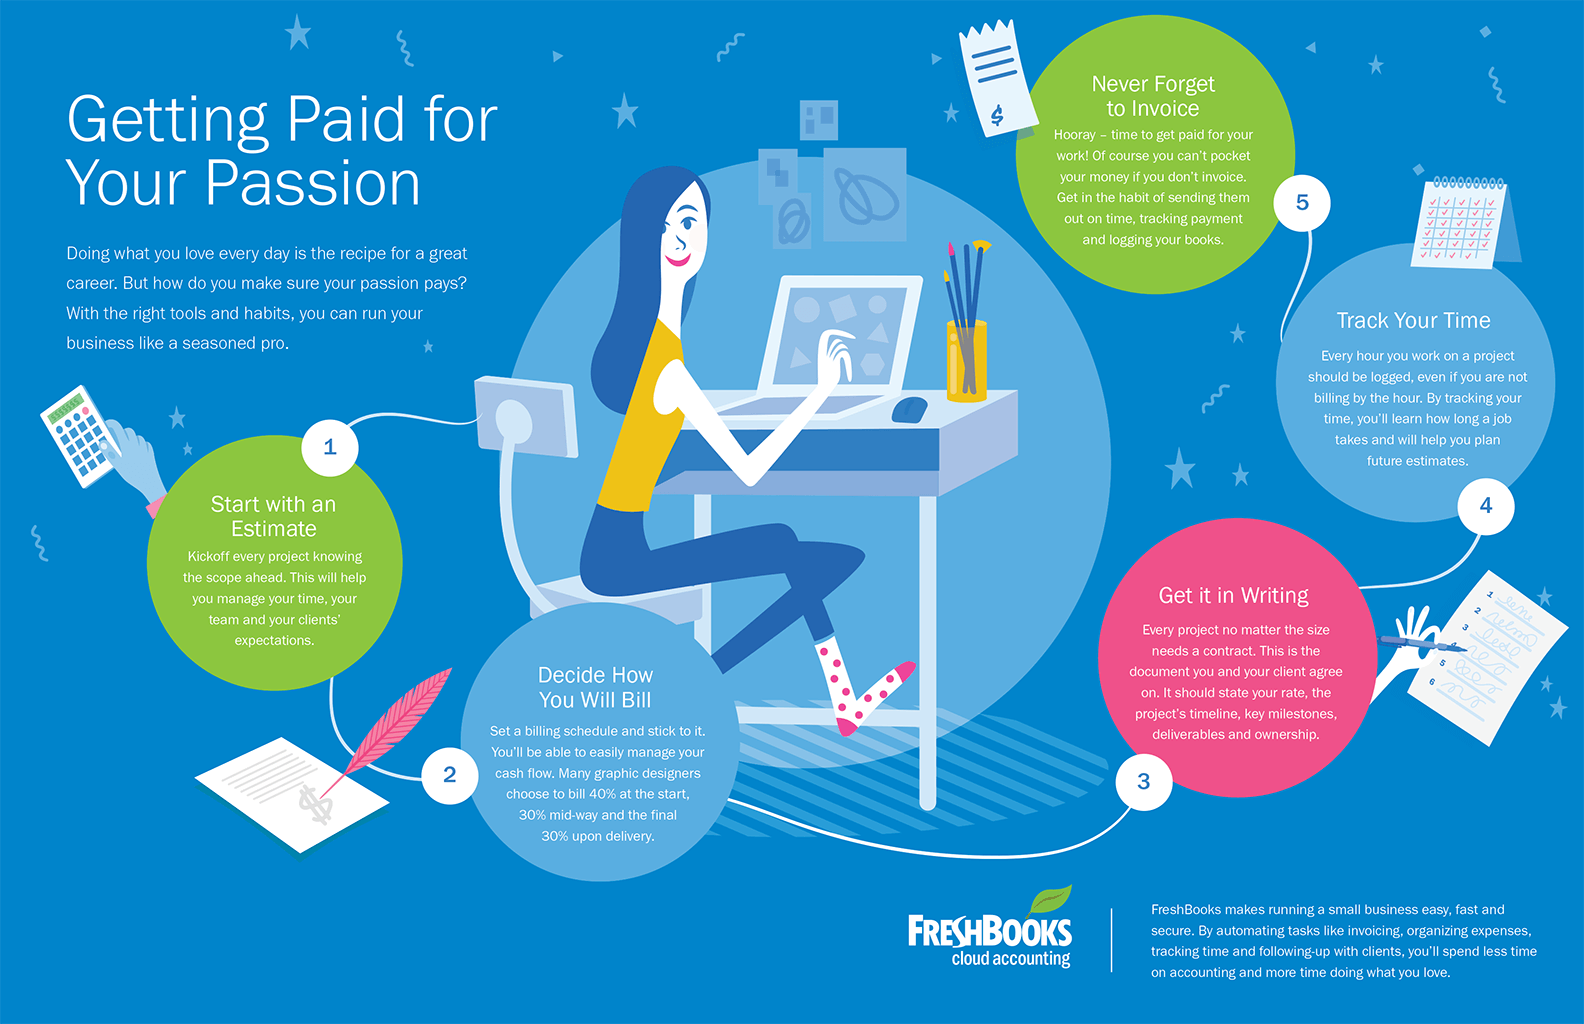 Getting Paid for Your Passion Infographic